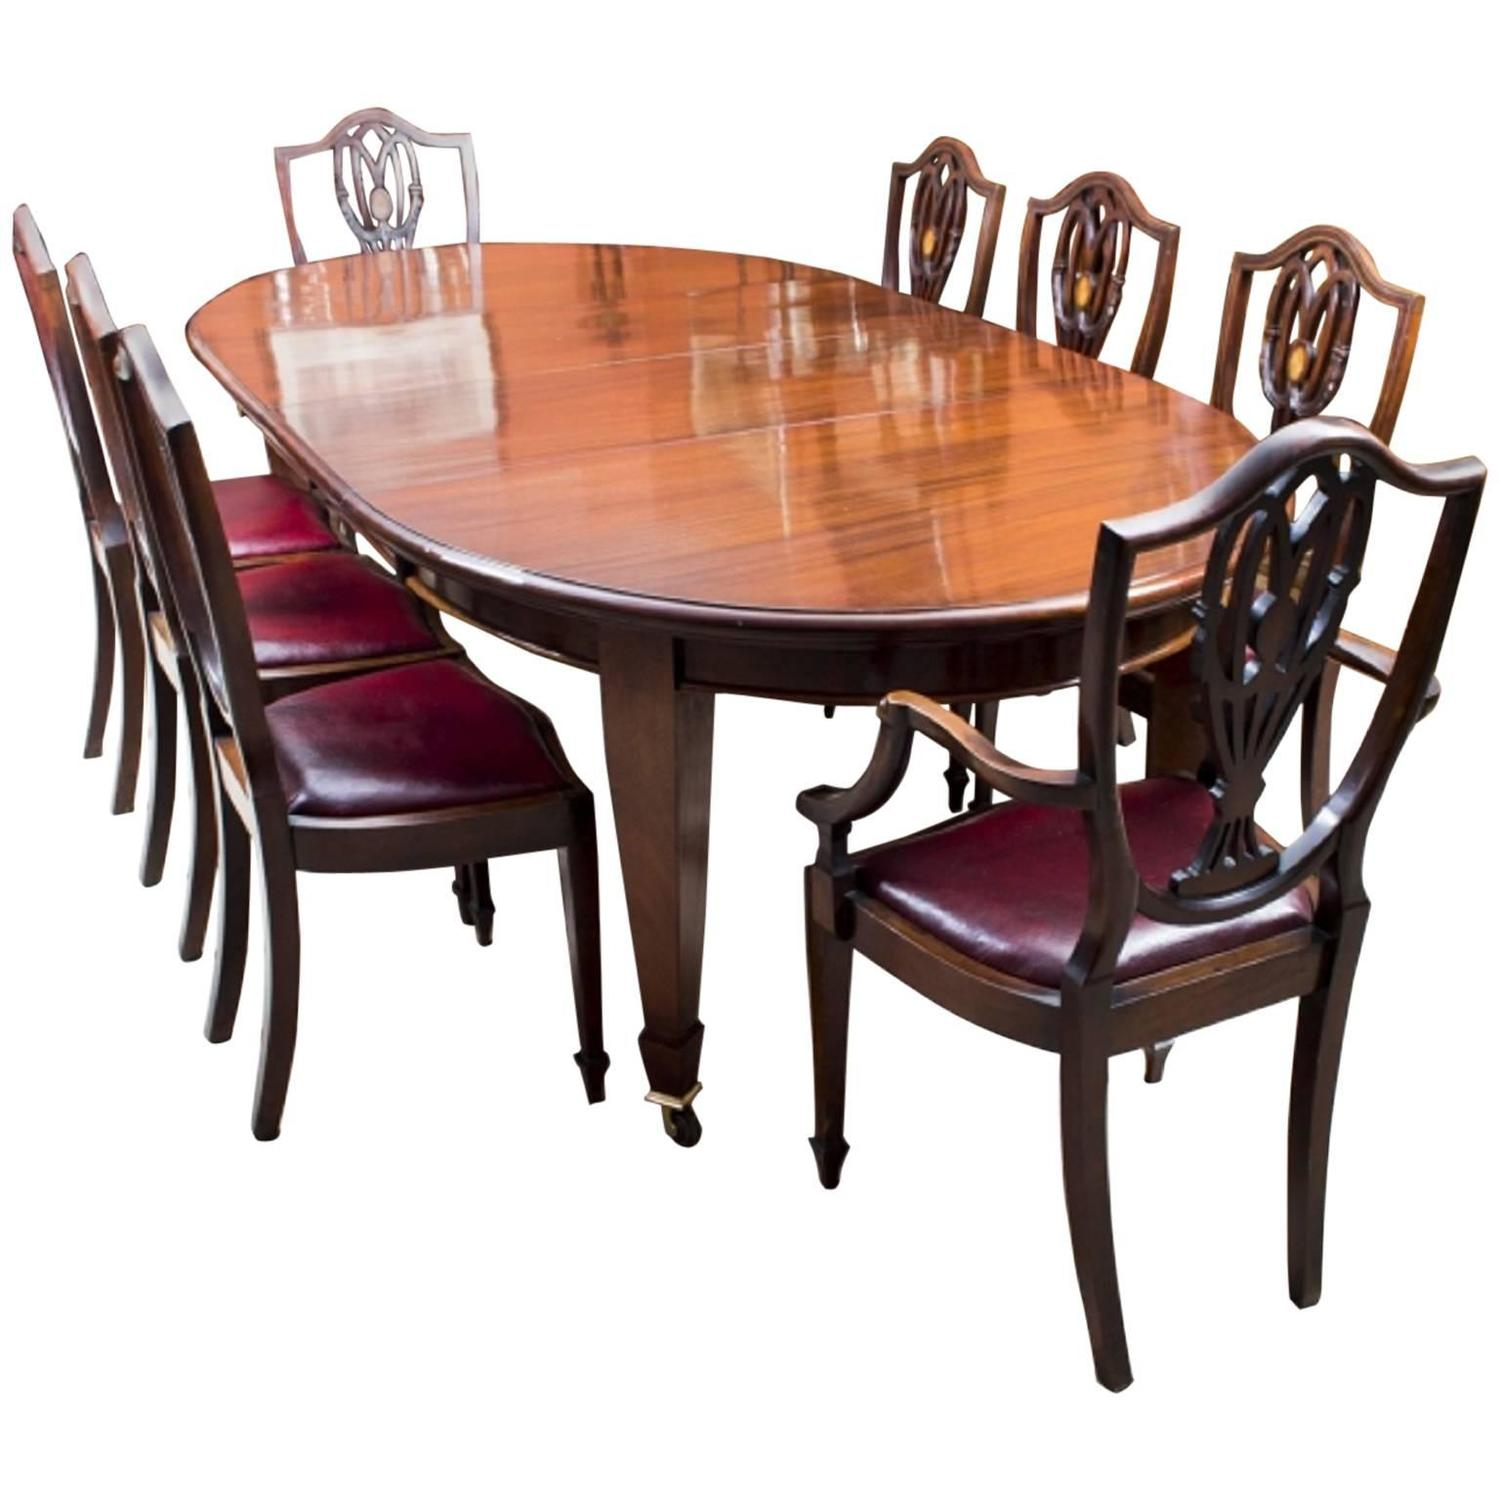 Antique edwardian dining table with eight chairs circa for Antique dining room furniture